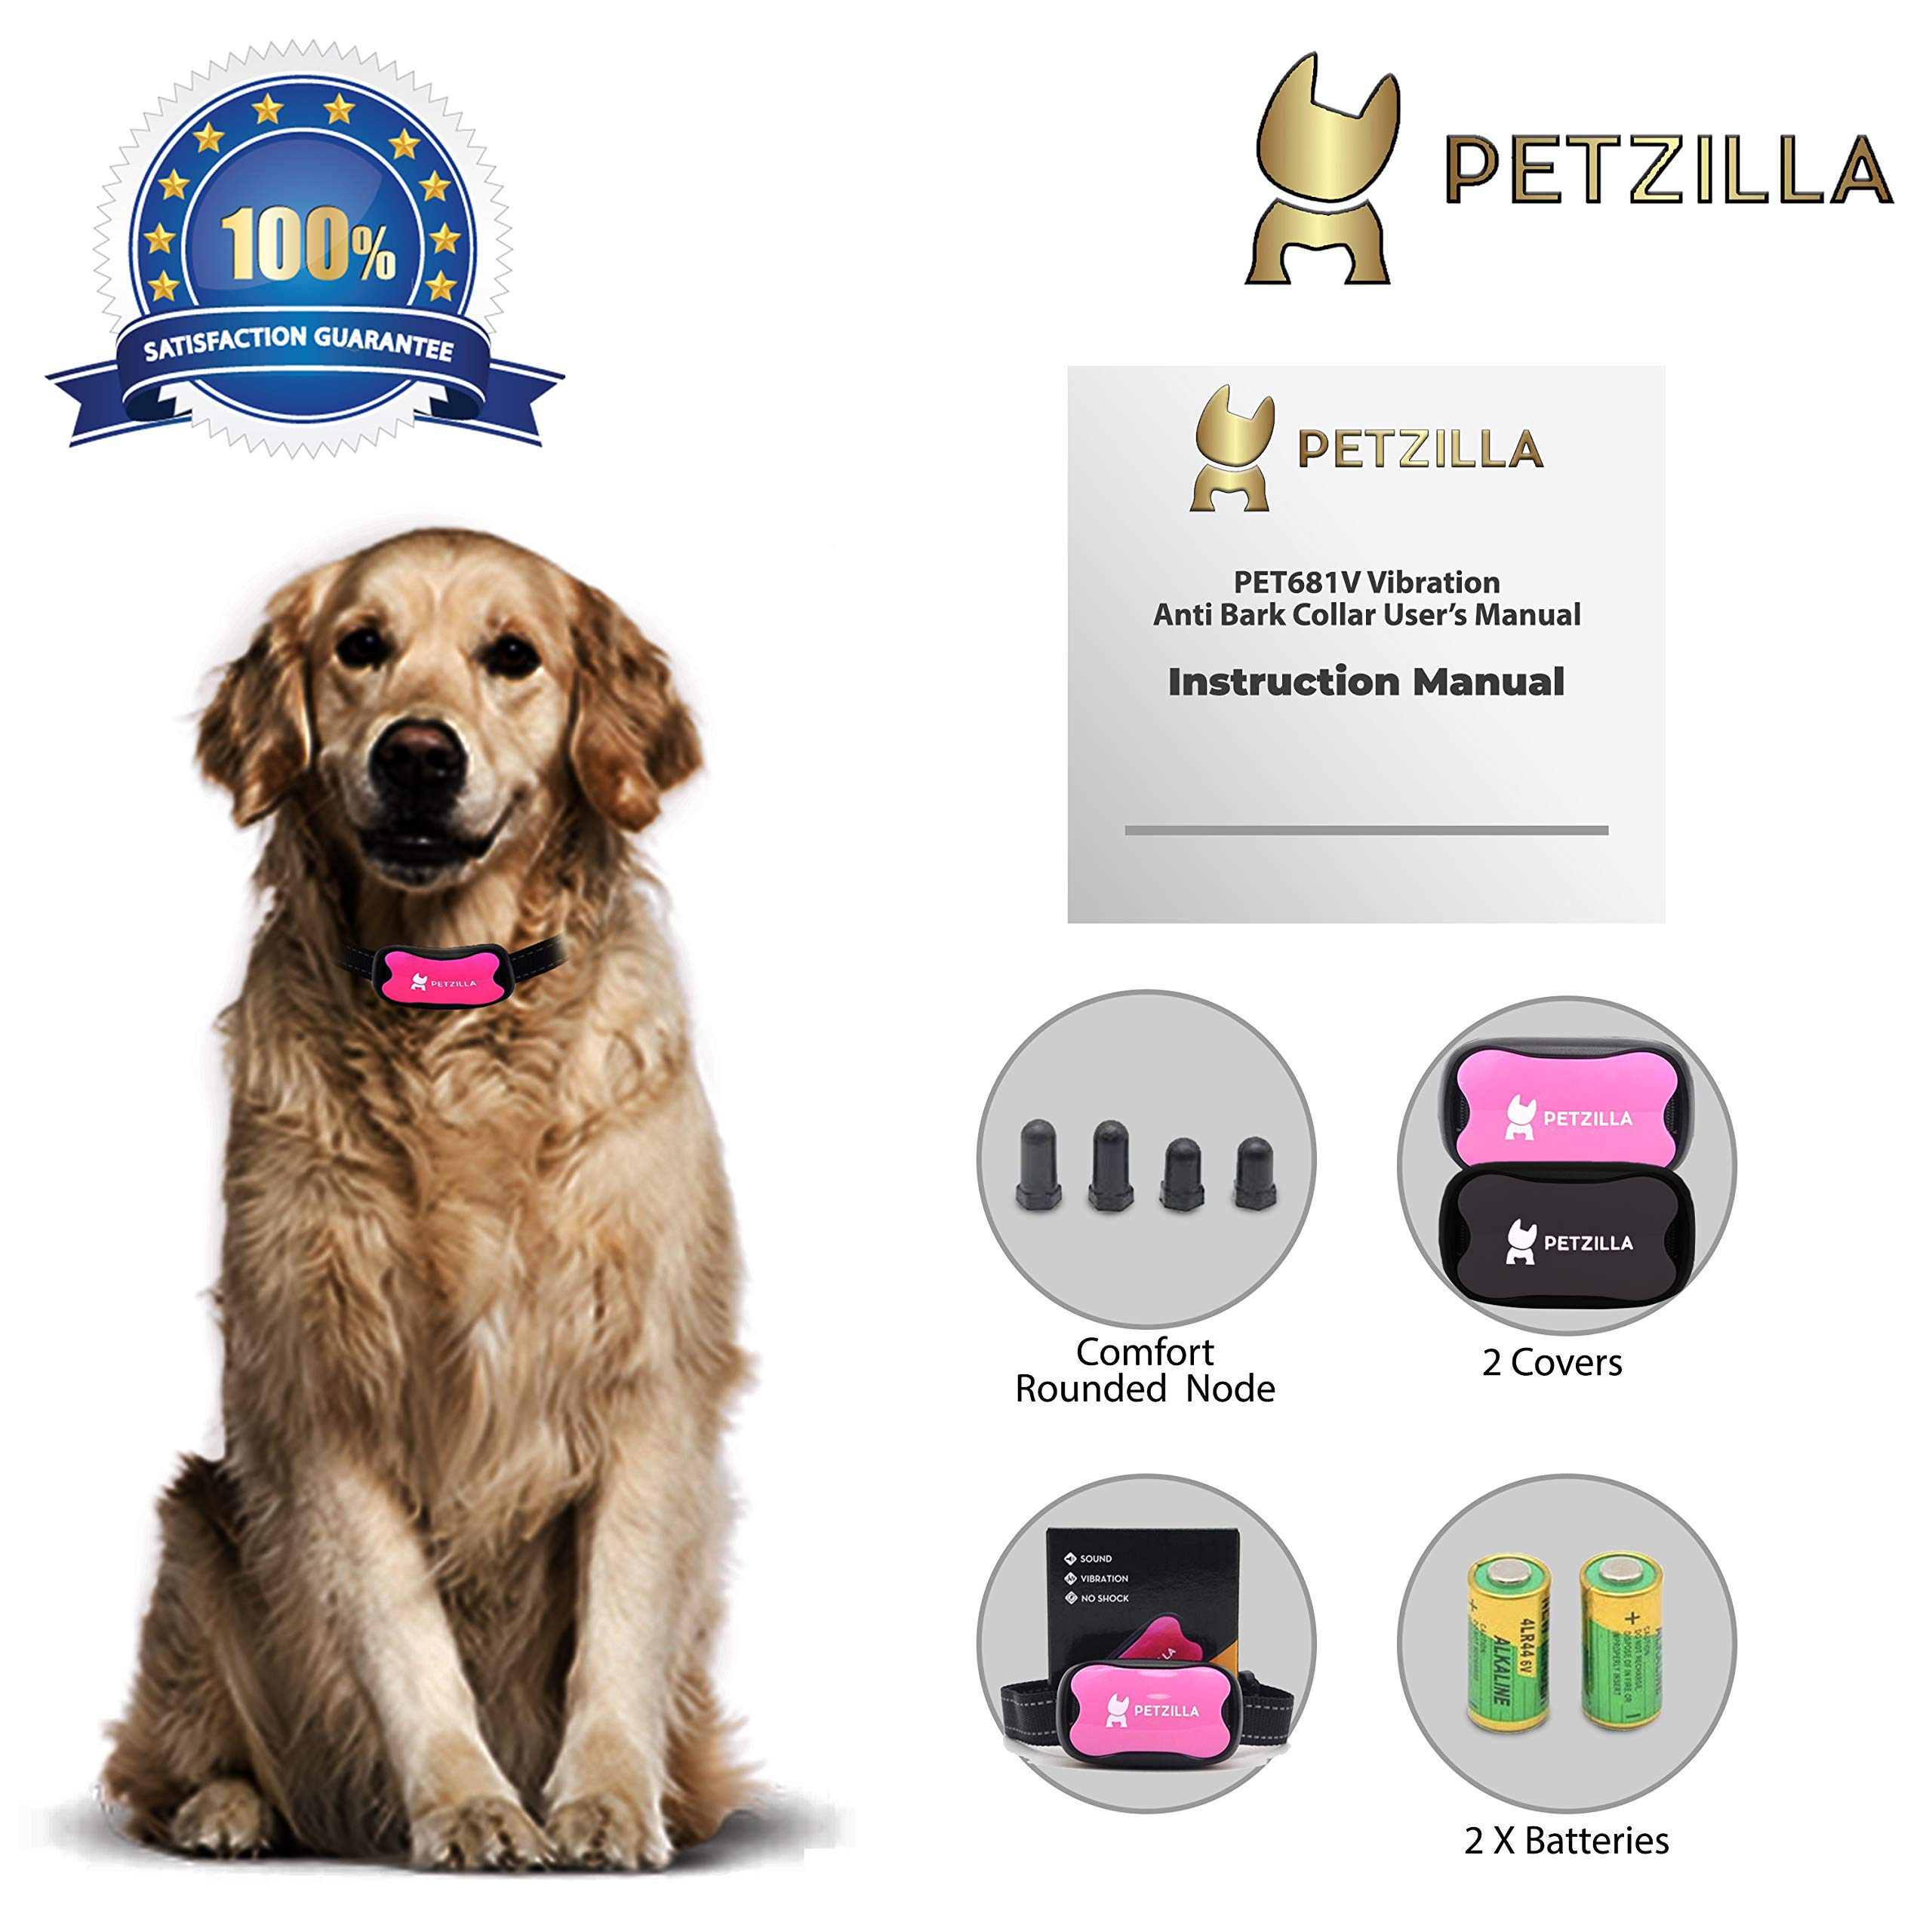 Petzilla 683 Anti Bark Collar No Bark Collar No Shock No Spray Bark Control Safe & Humane Anti Bark Collar | Sound & Vibration Barking Control Device